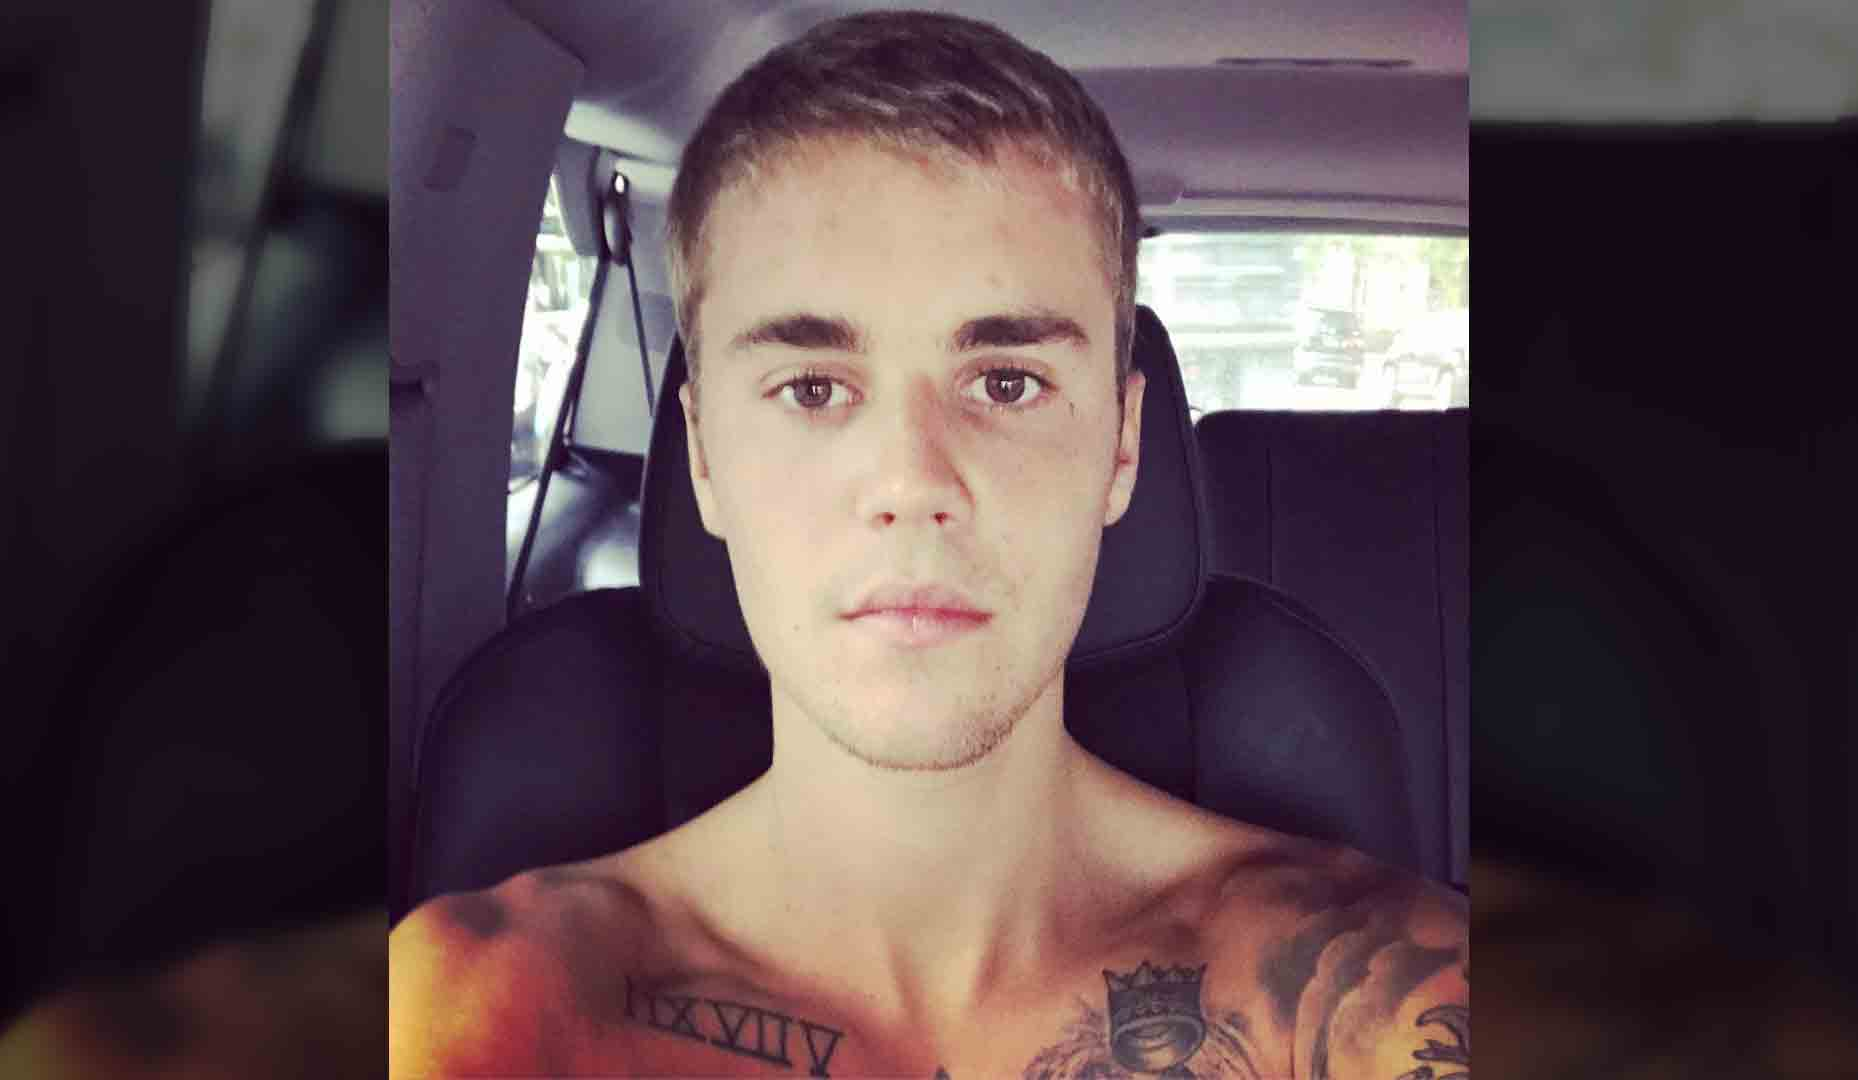 67f251f80e0d9 Justin Bieber Has Pink Eye. Here's What Causes This Icky Infection - Health